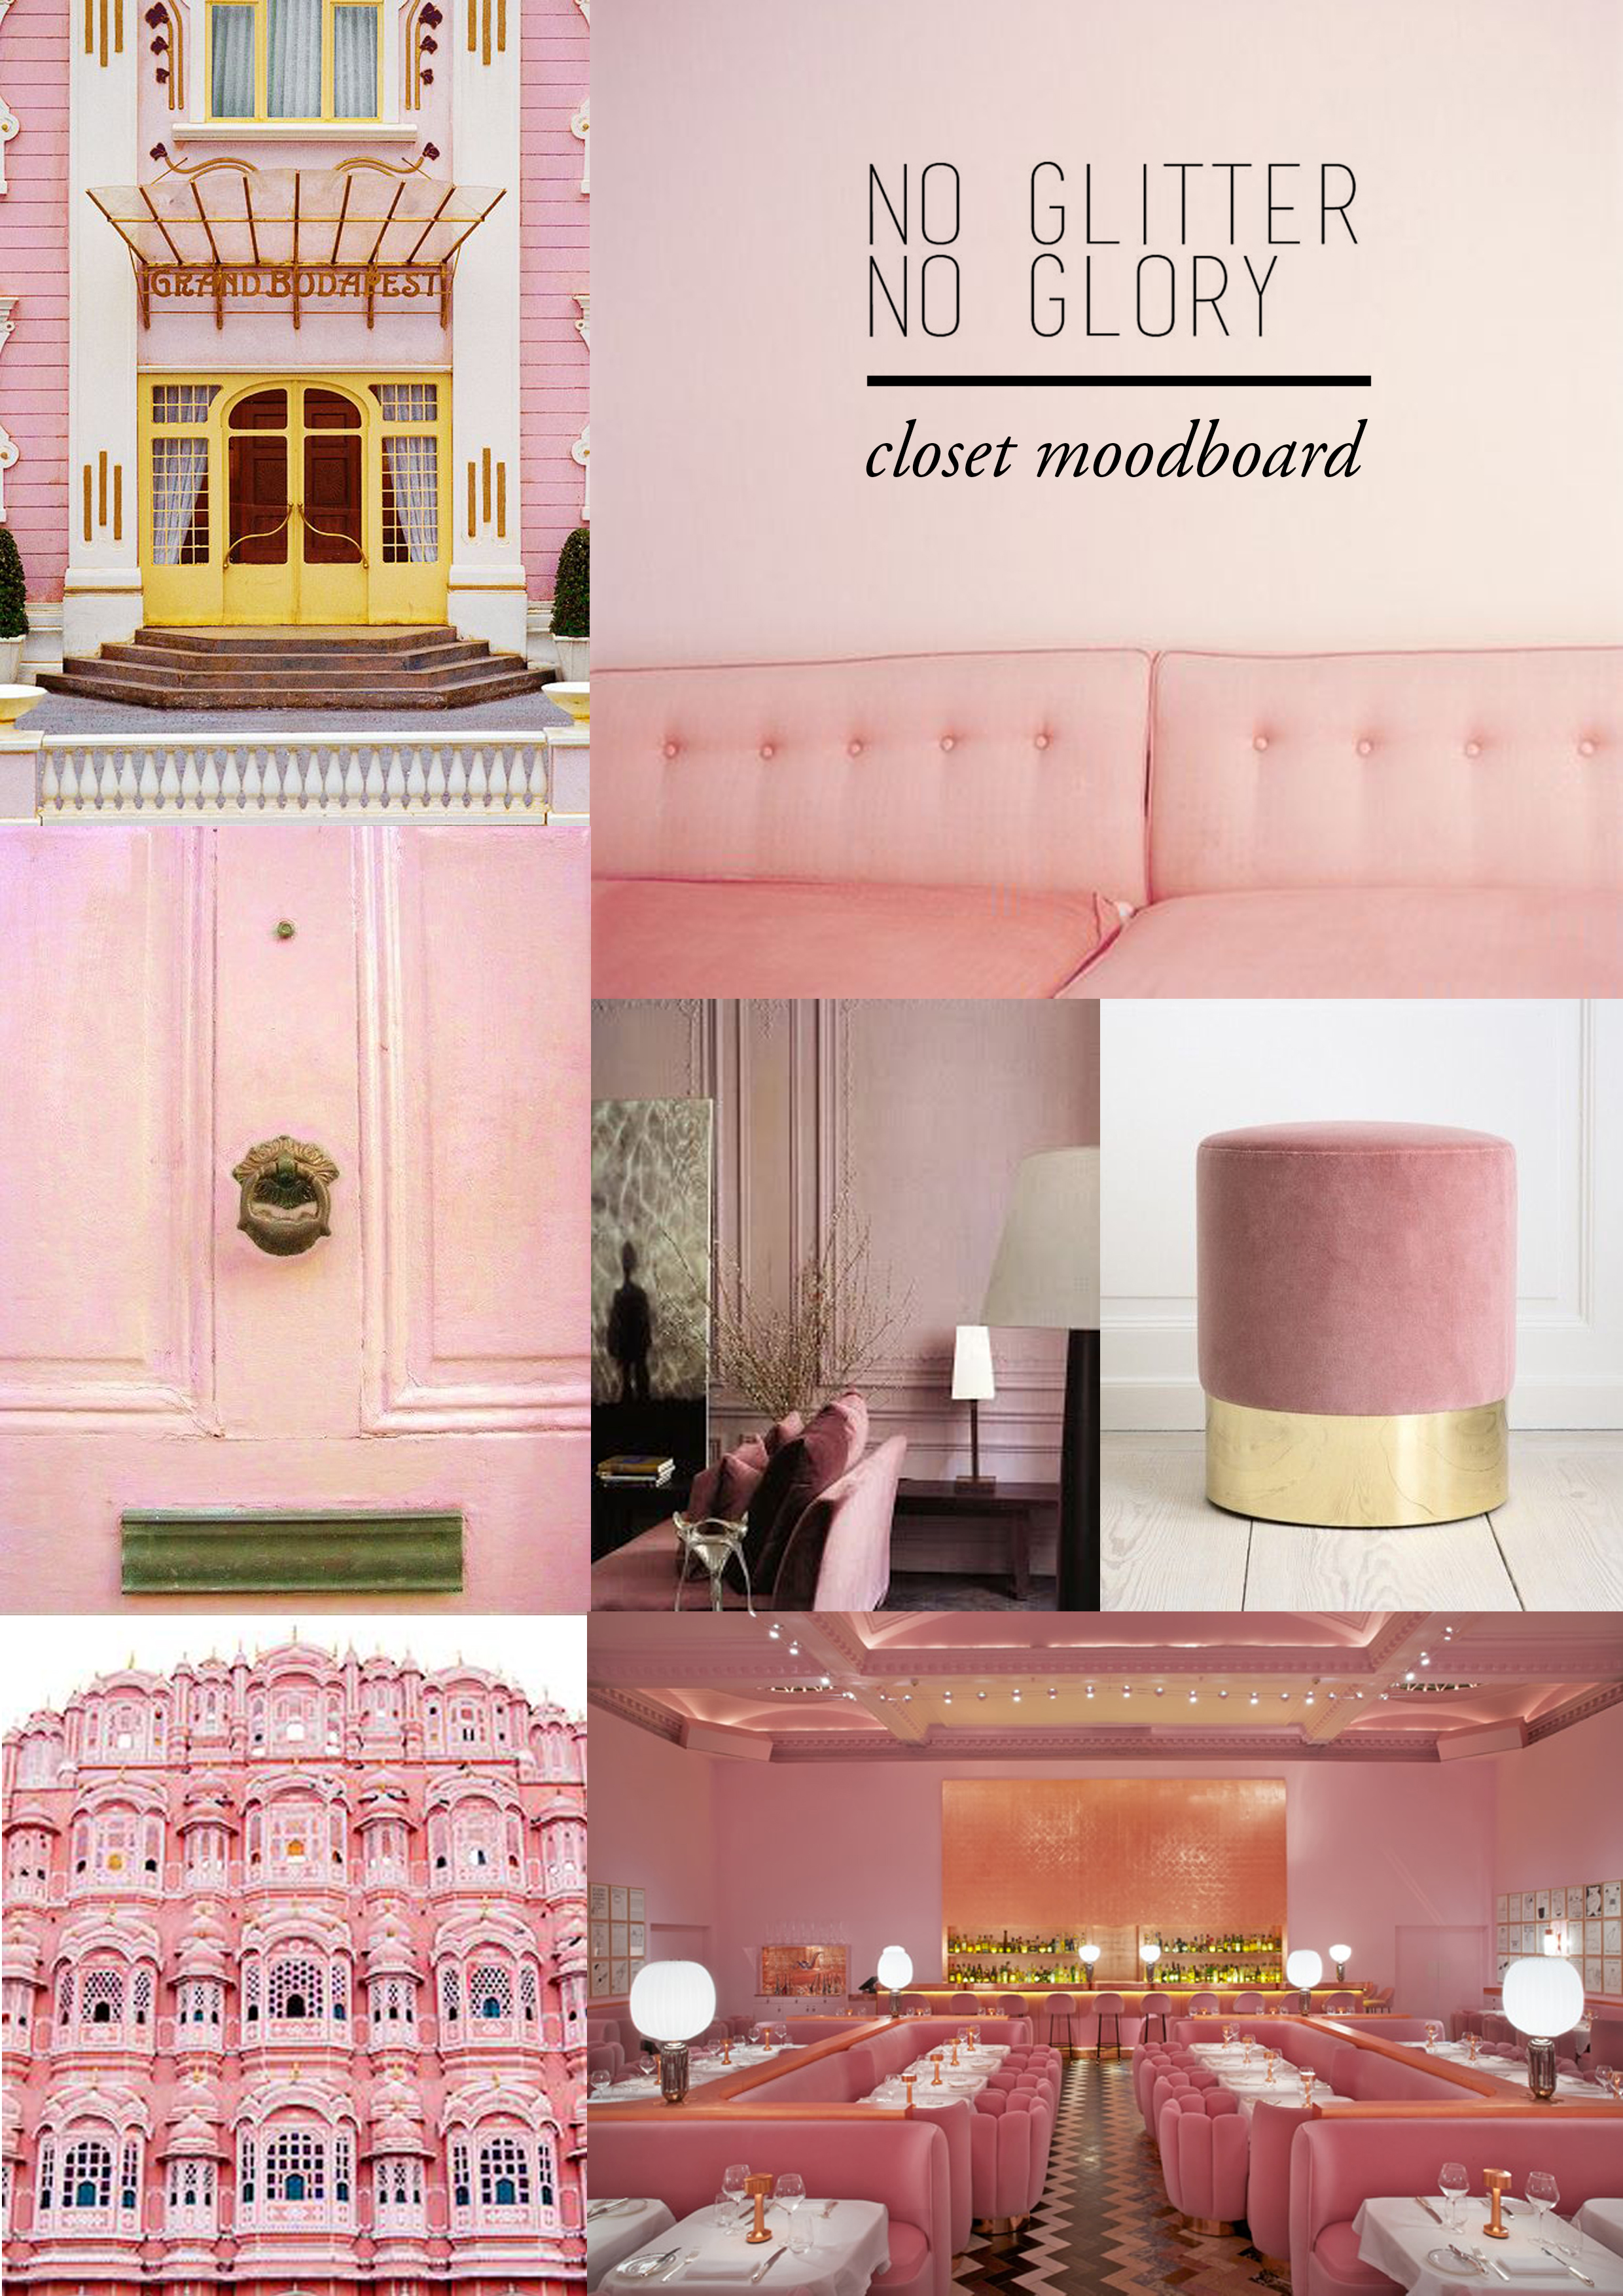 Home Renovation: Pink Closet Inspiration & Moodboard